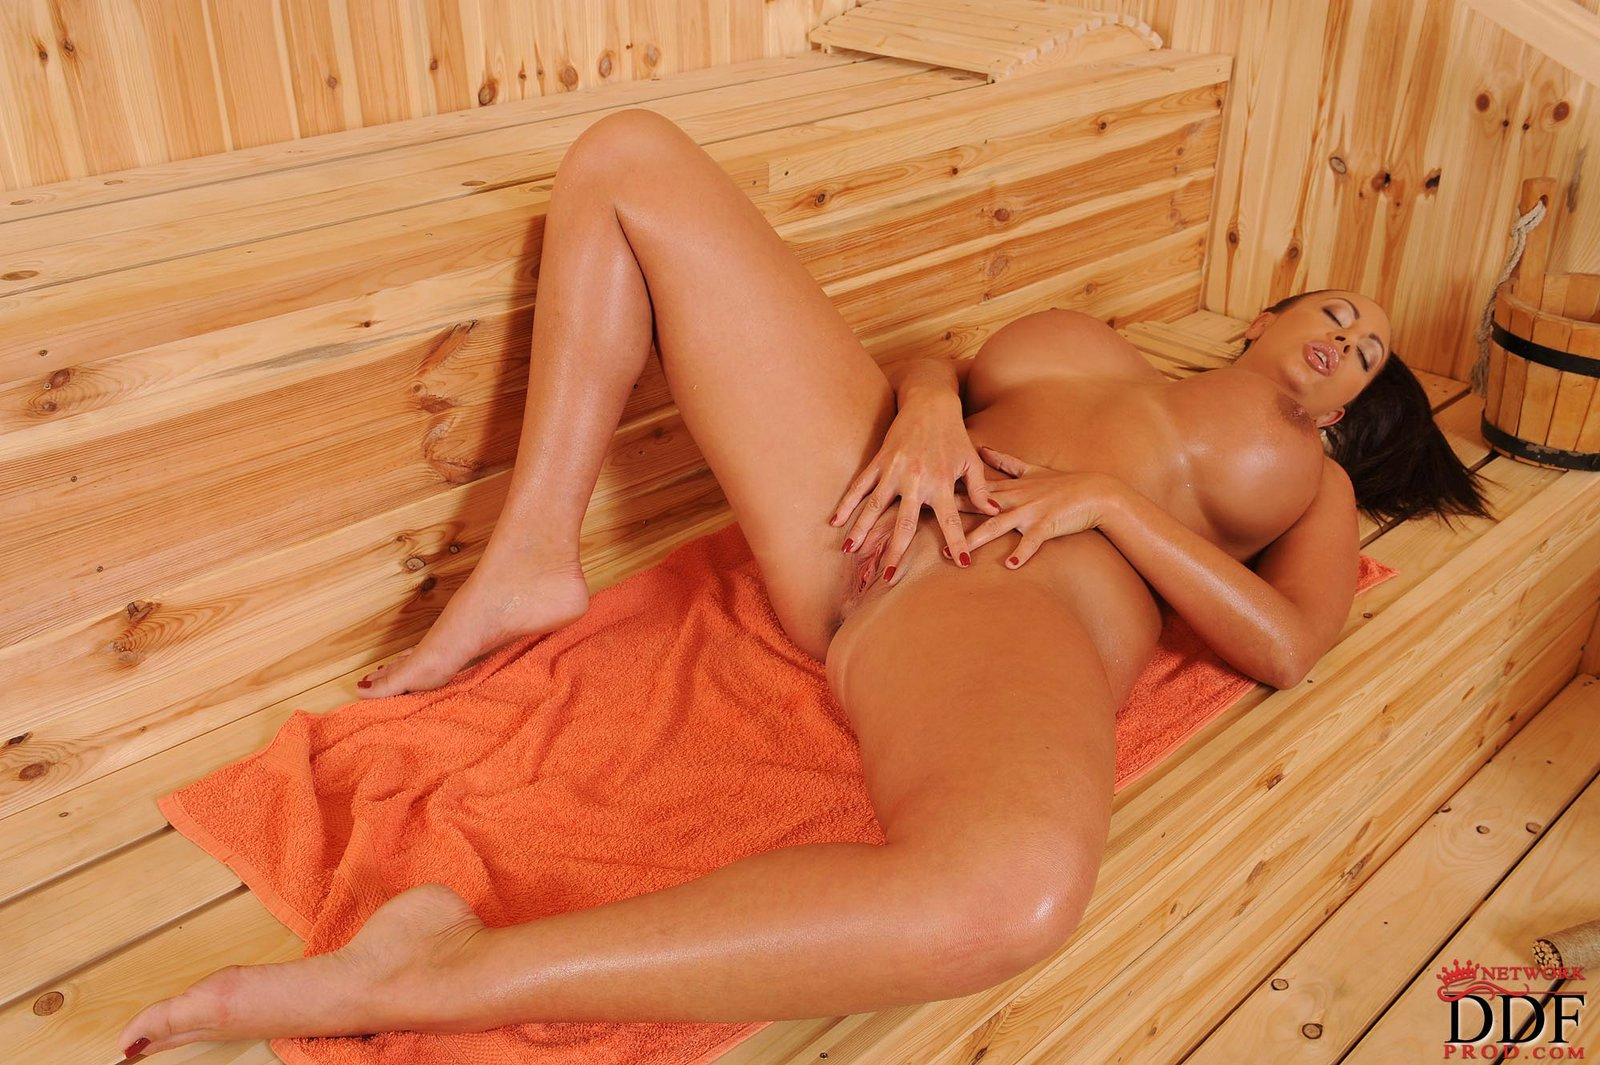 emma butt showing off her sexy body in the sauna   my